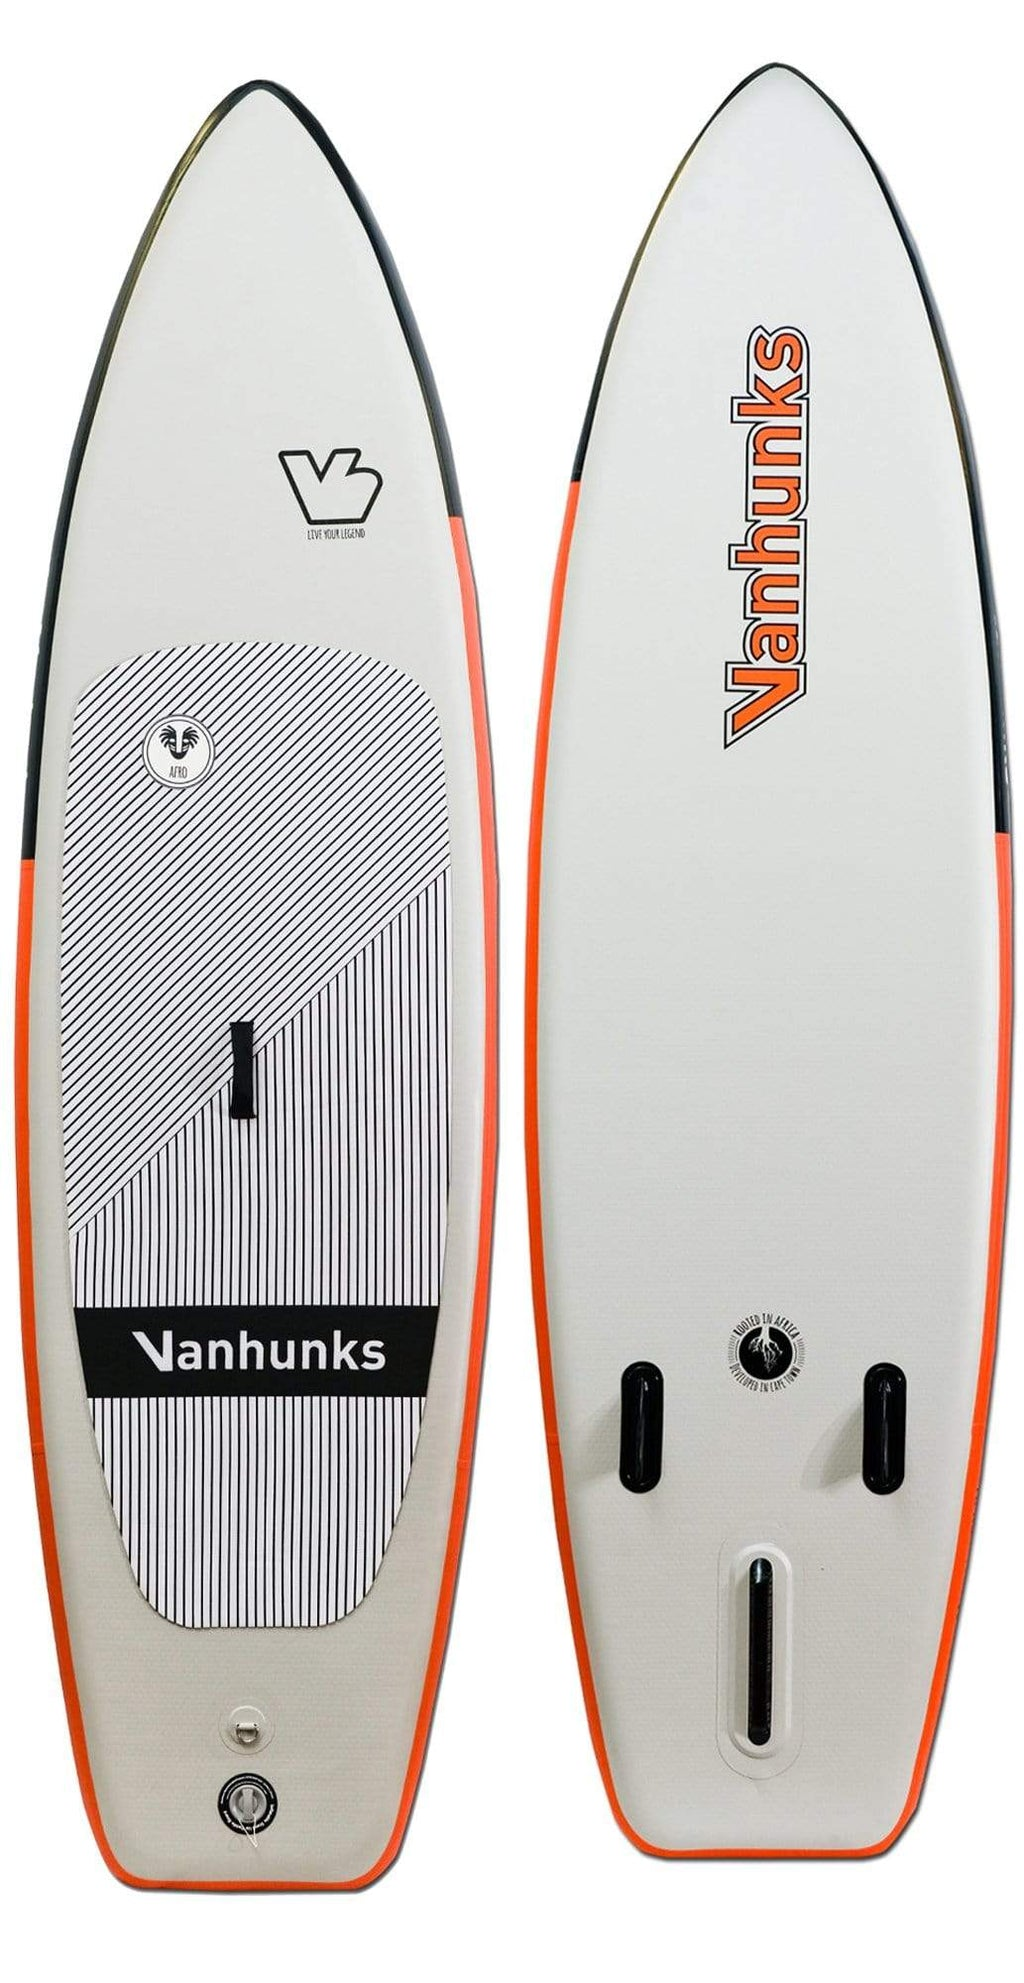 Vanhunks Afro Inflatable SUP